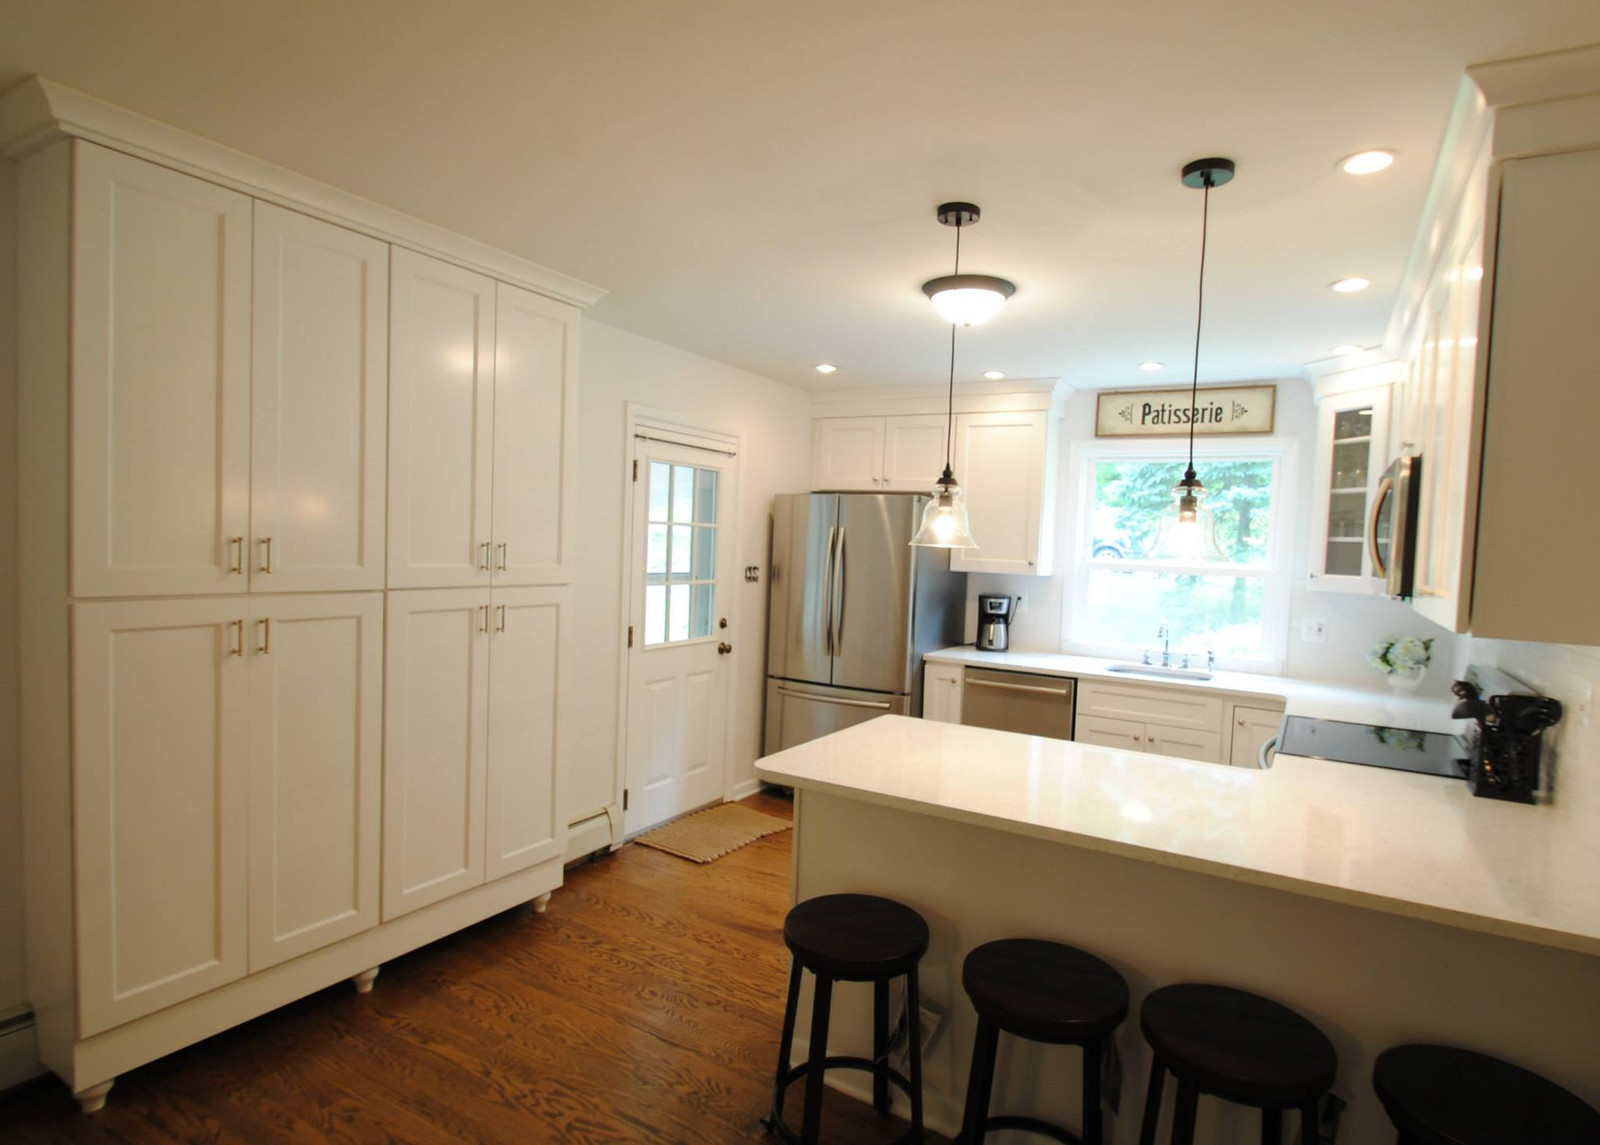 Merveilleux York Cabinets In Painted White